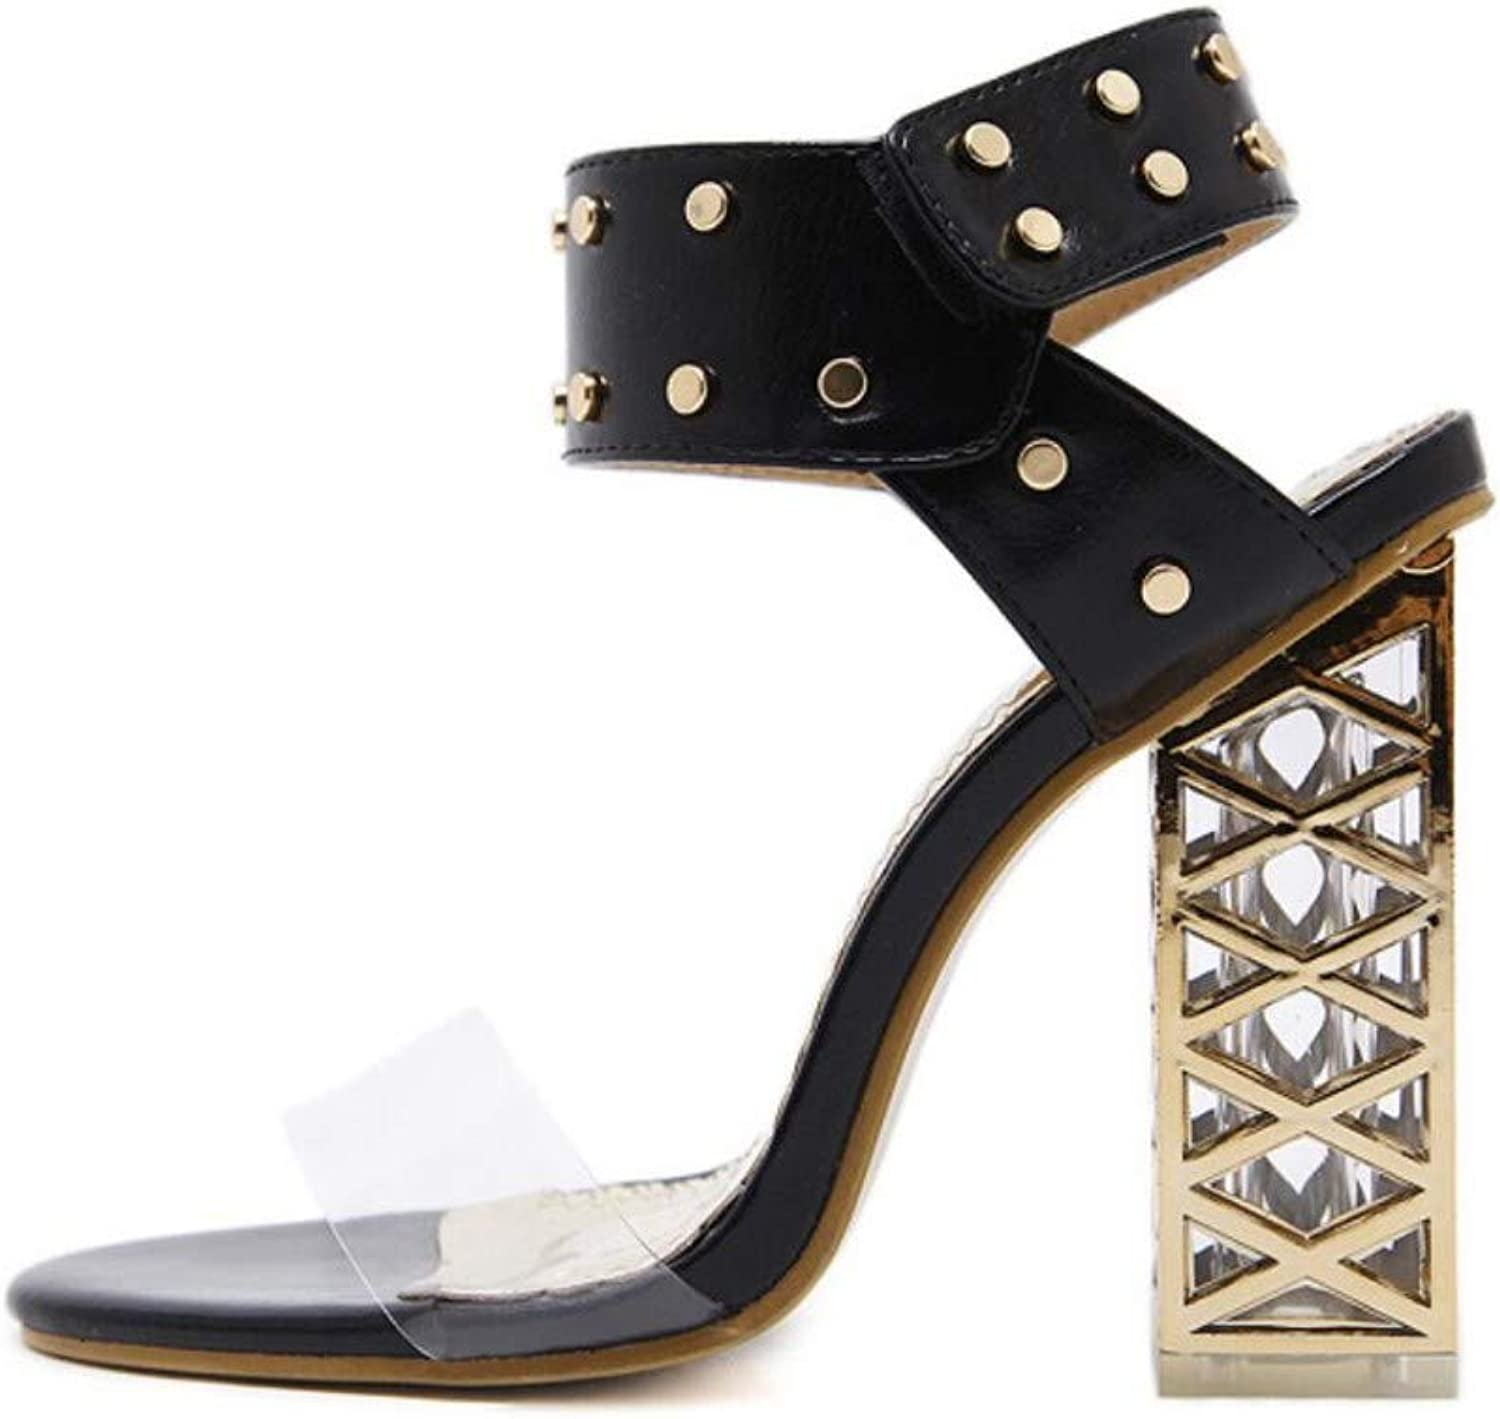 JQfashion Women's High-Heeled Sandals Spring and Summer Roman shoes Crystal Heel Open Toe Thick High Rivet Transparent